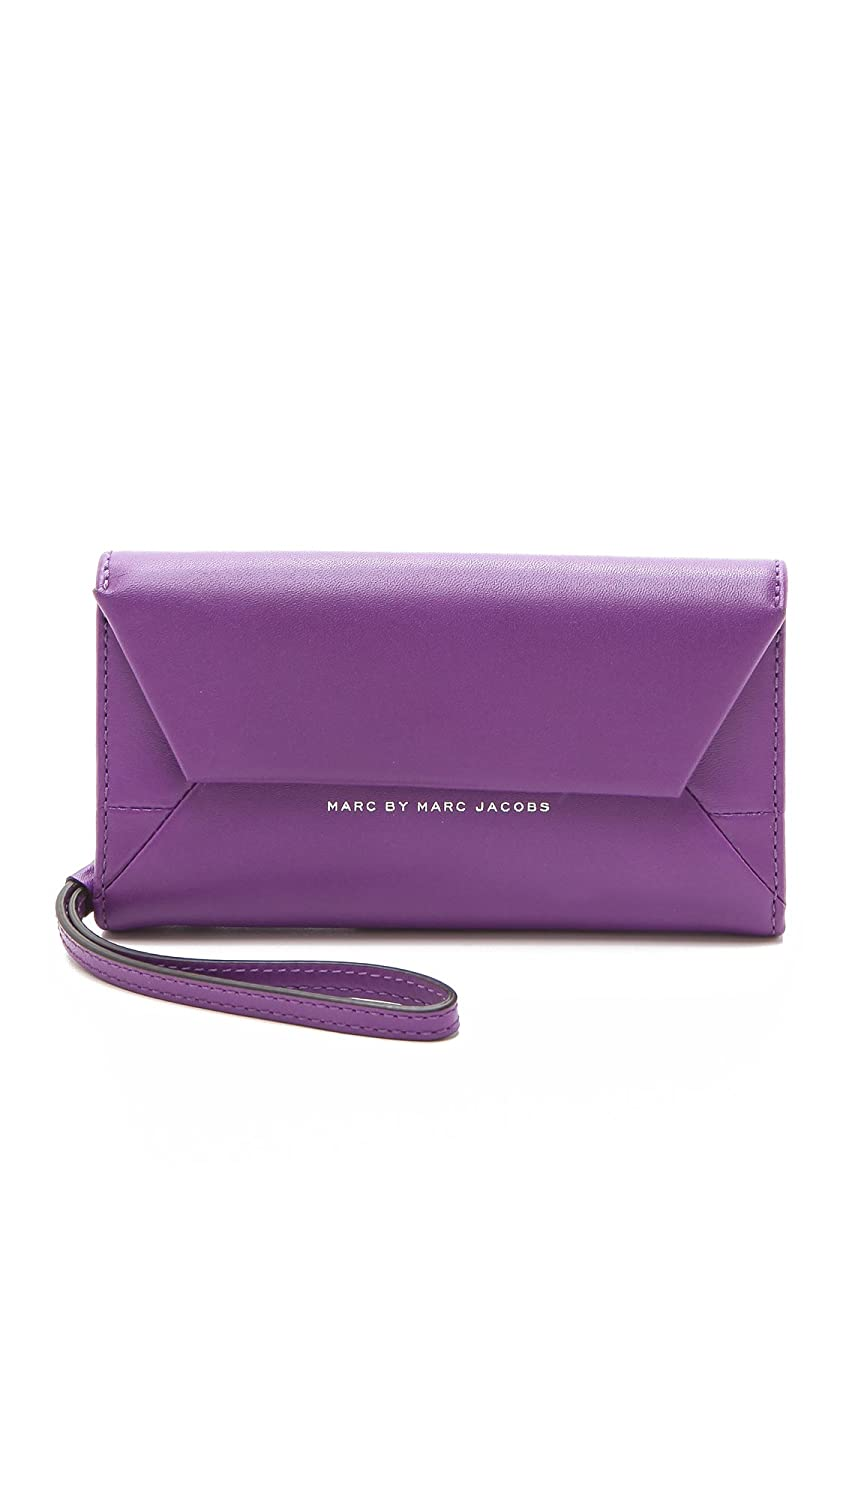 Marc by Marc Jacobs Women's Updated Tangram Phone Wristlet Black One Size